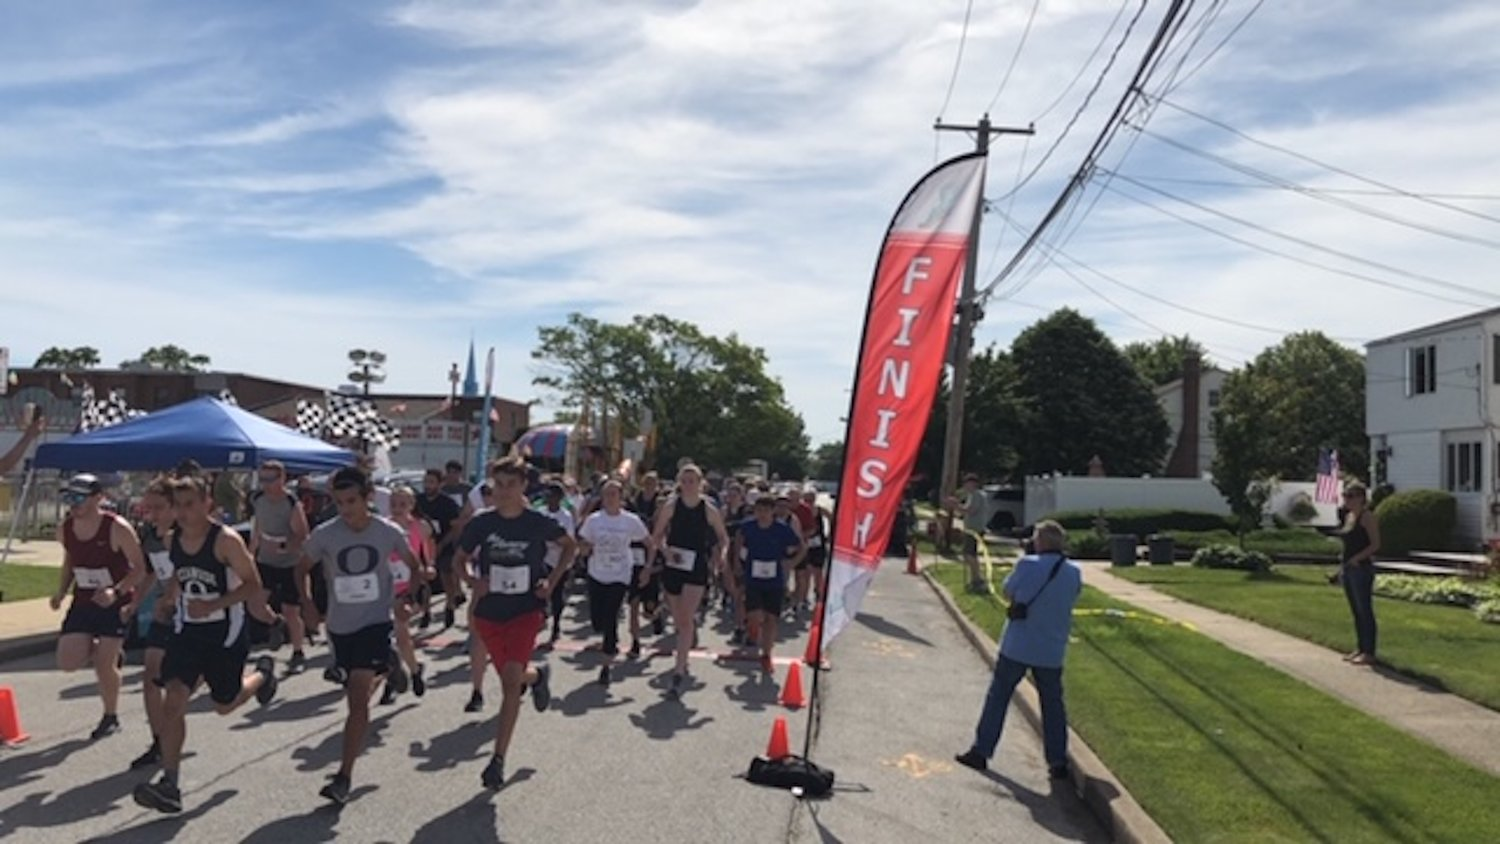 St. Anthony's parishioners are hosting a virtual 5K from July 10 to 19 as a fundraiser for the church, which saw donations drop after the coronavirus pandemic began.